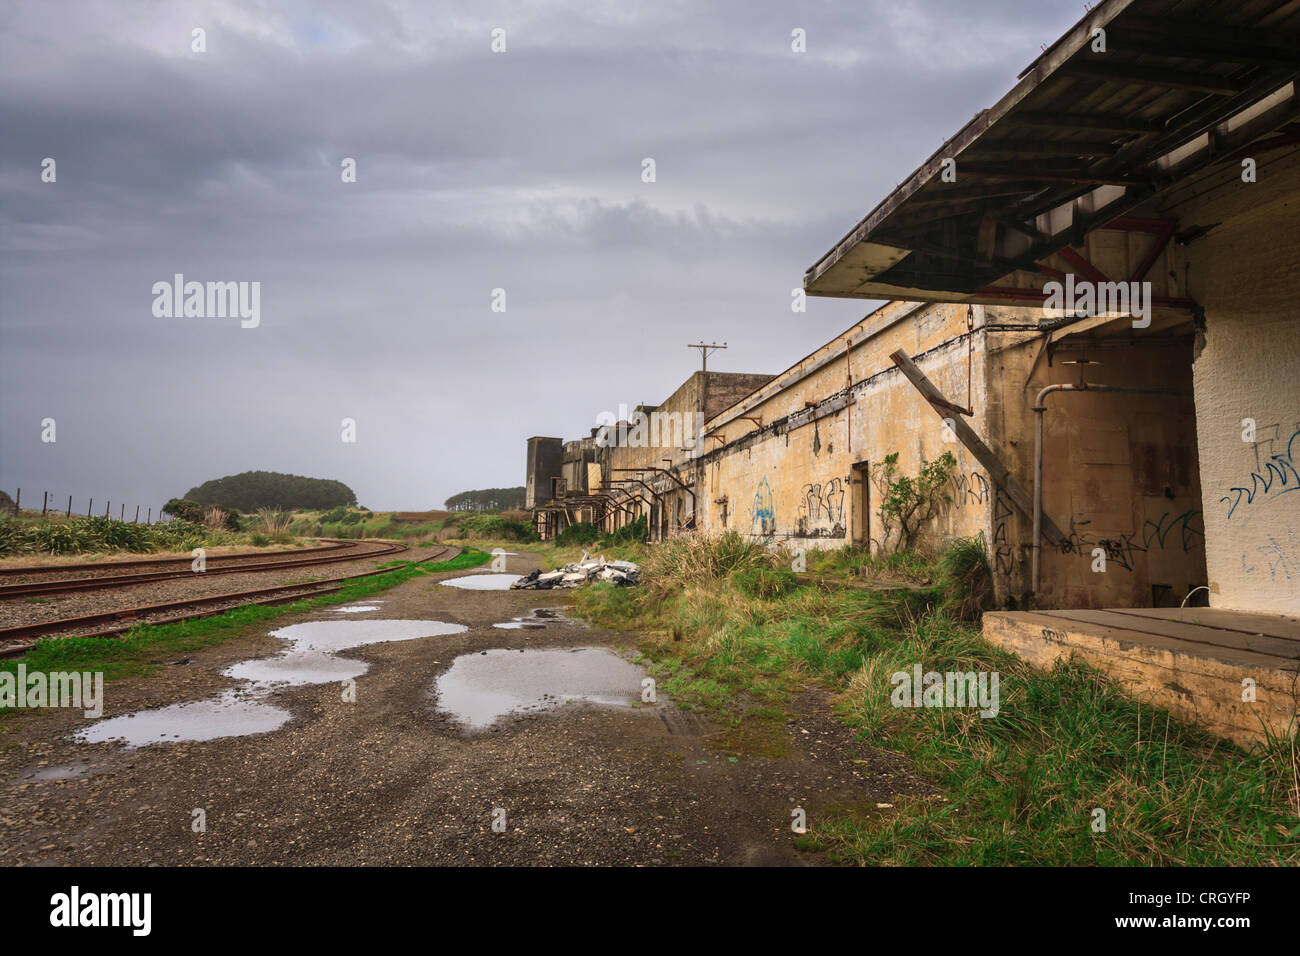 Abandoned factory on a wet day, gray sky, puddles on the ground, graffiti. - Stock Image